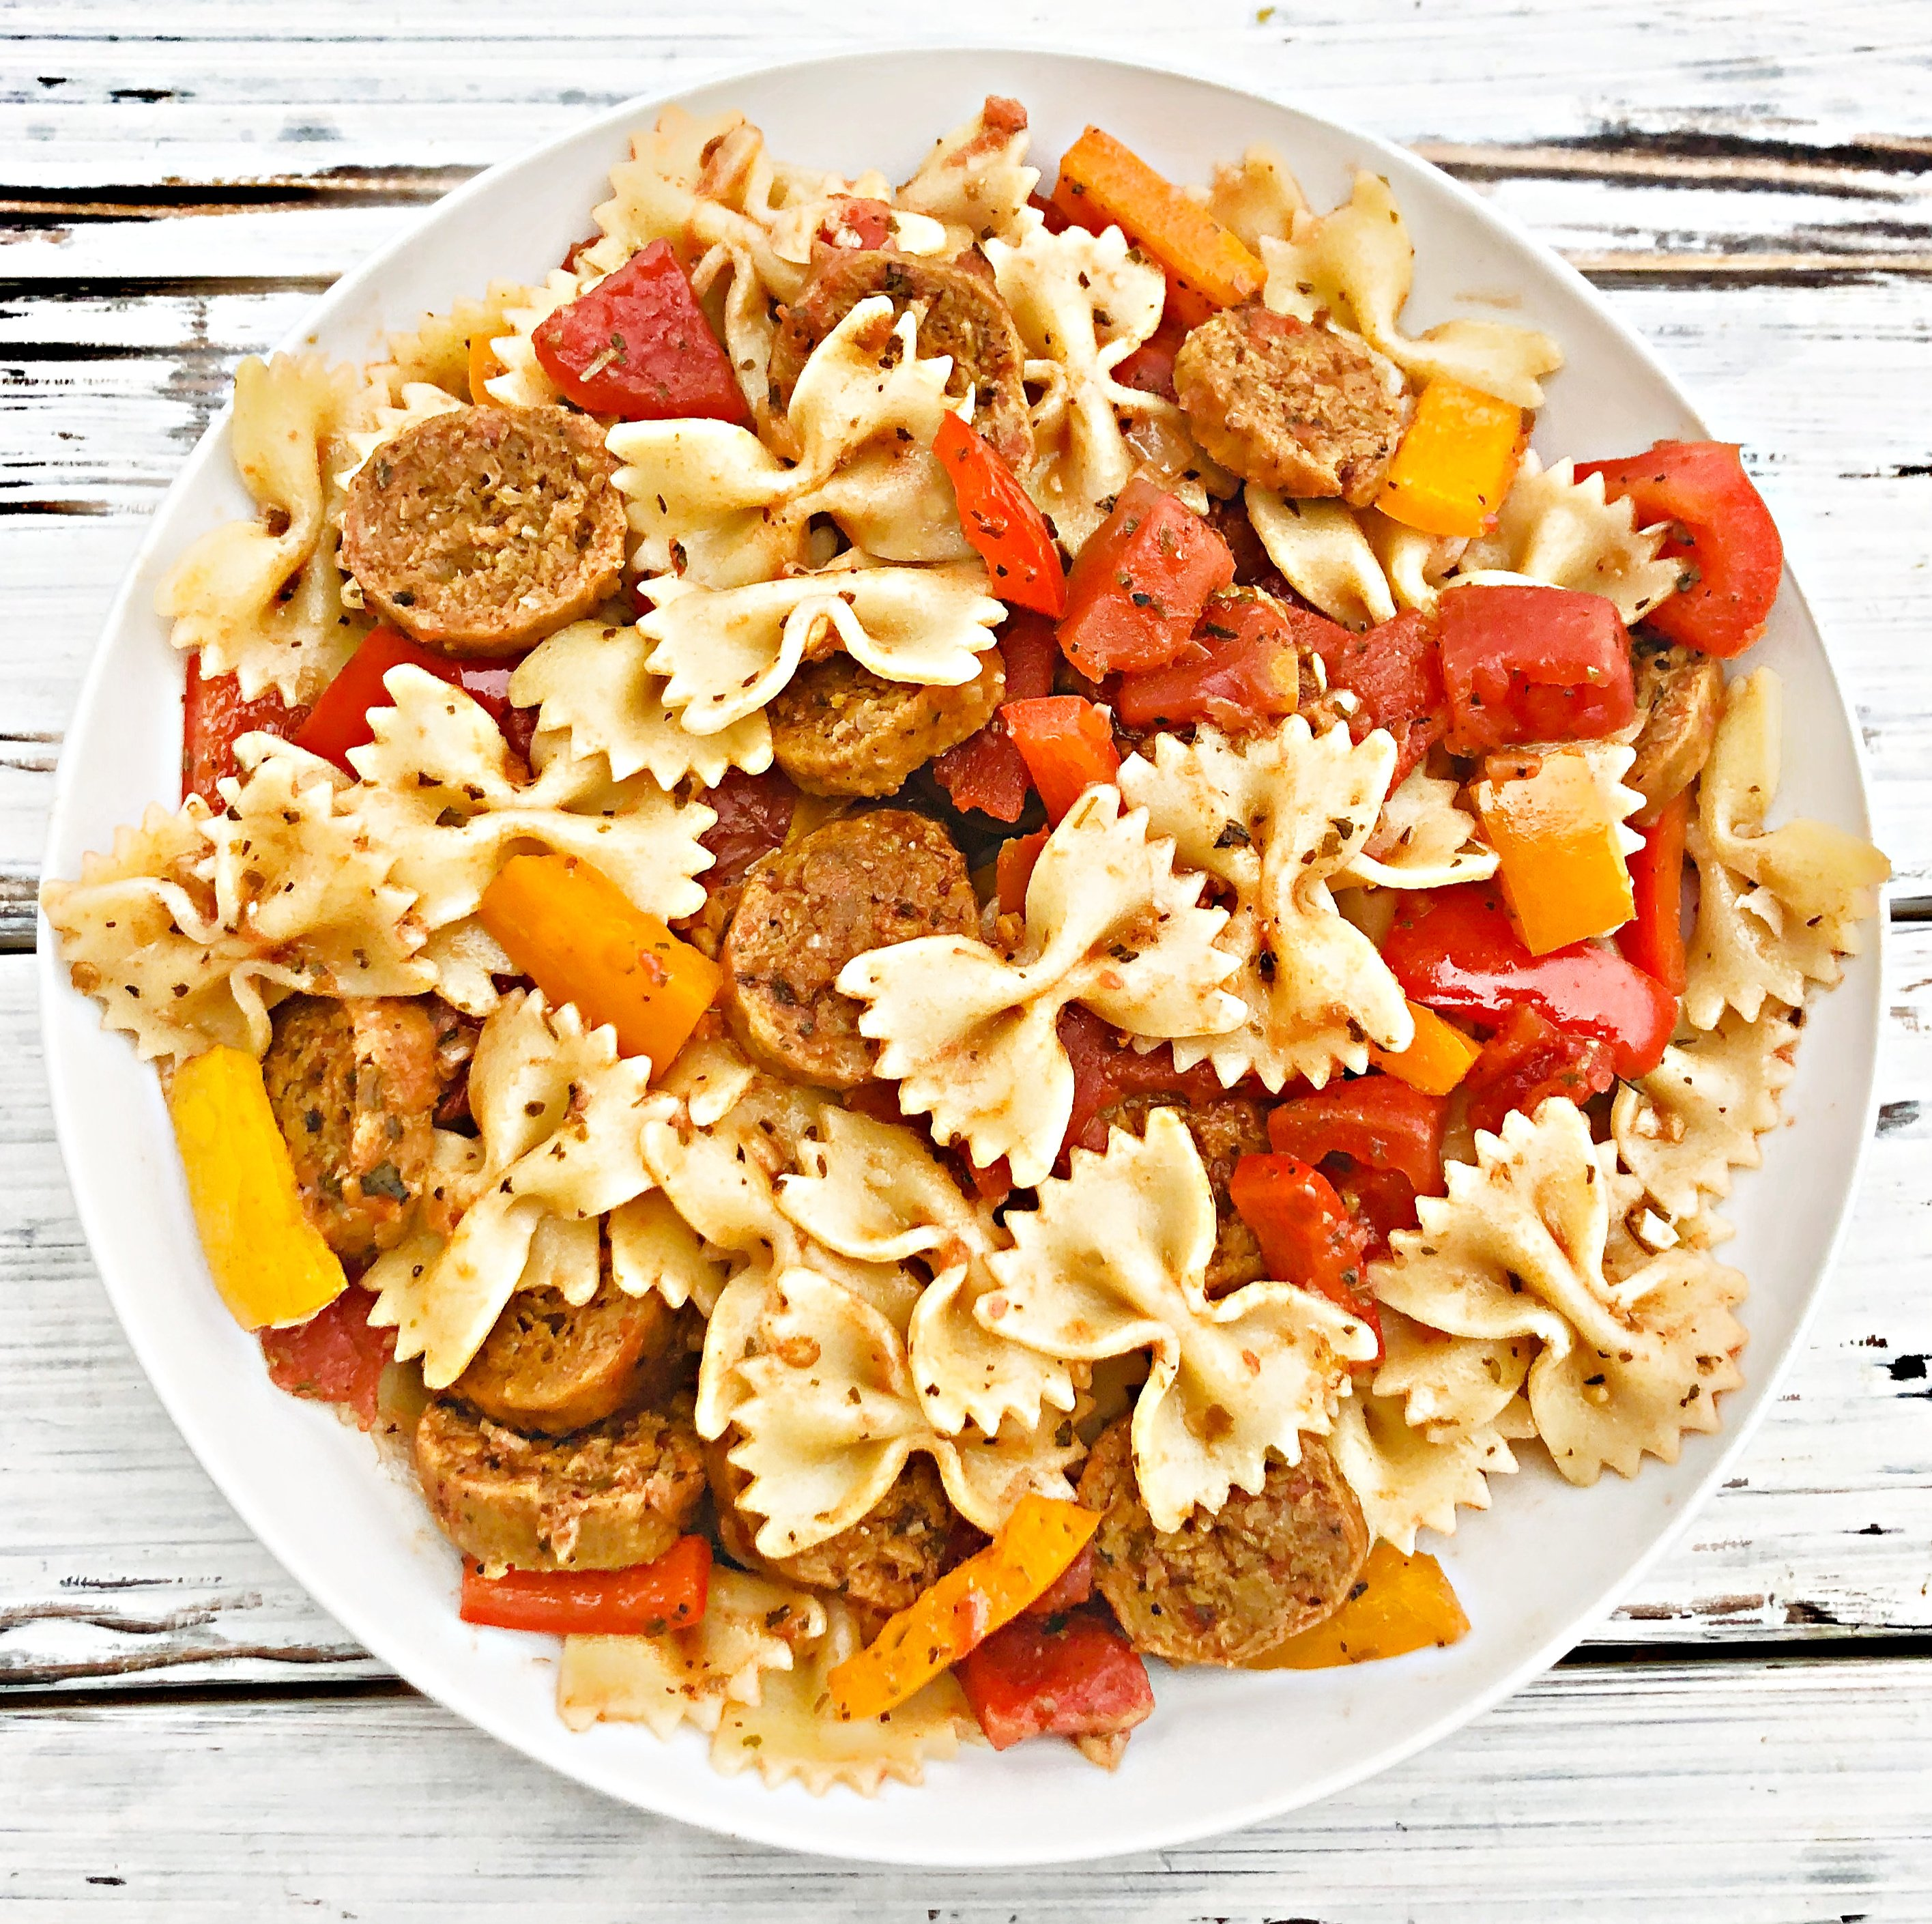 Vegan Sausage and Peppers Pasta - A quick and easy plant-based skillet dinner filled with spicy Italian sausage, colorful bell peppers, and pasta tossed together in a light and earthy tomato sauce. Ready to serve in 30 minutes or less!